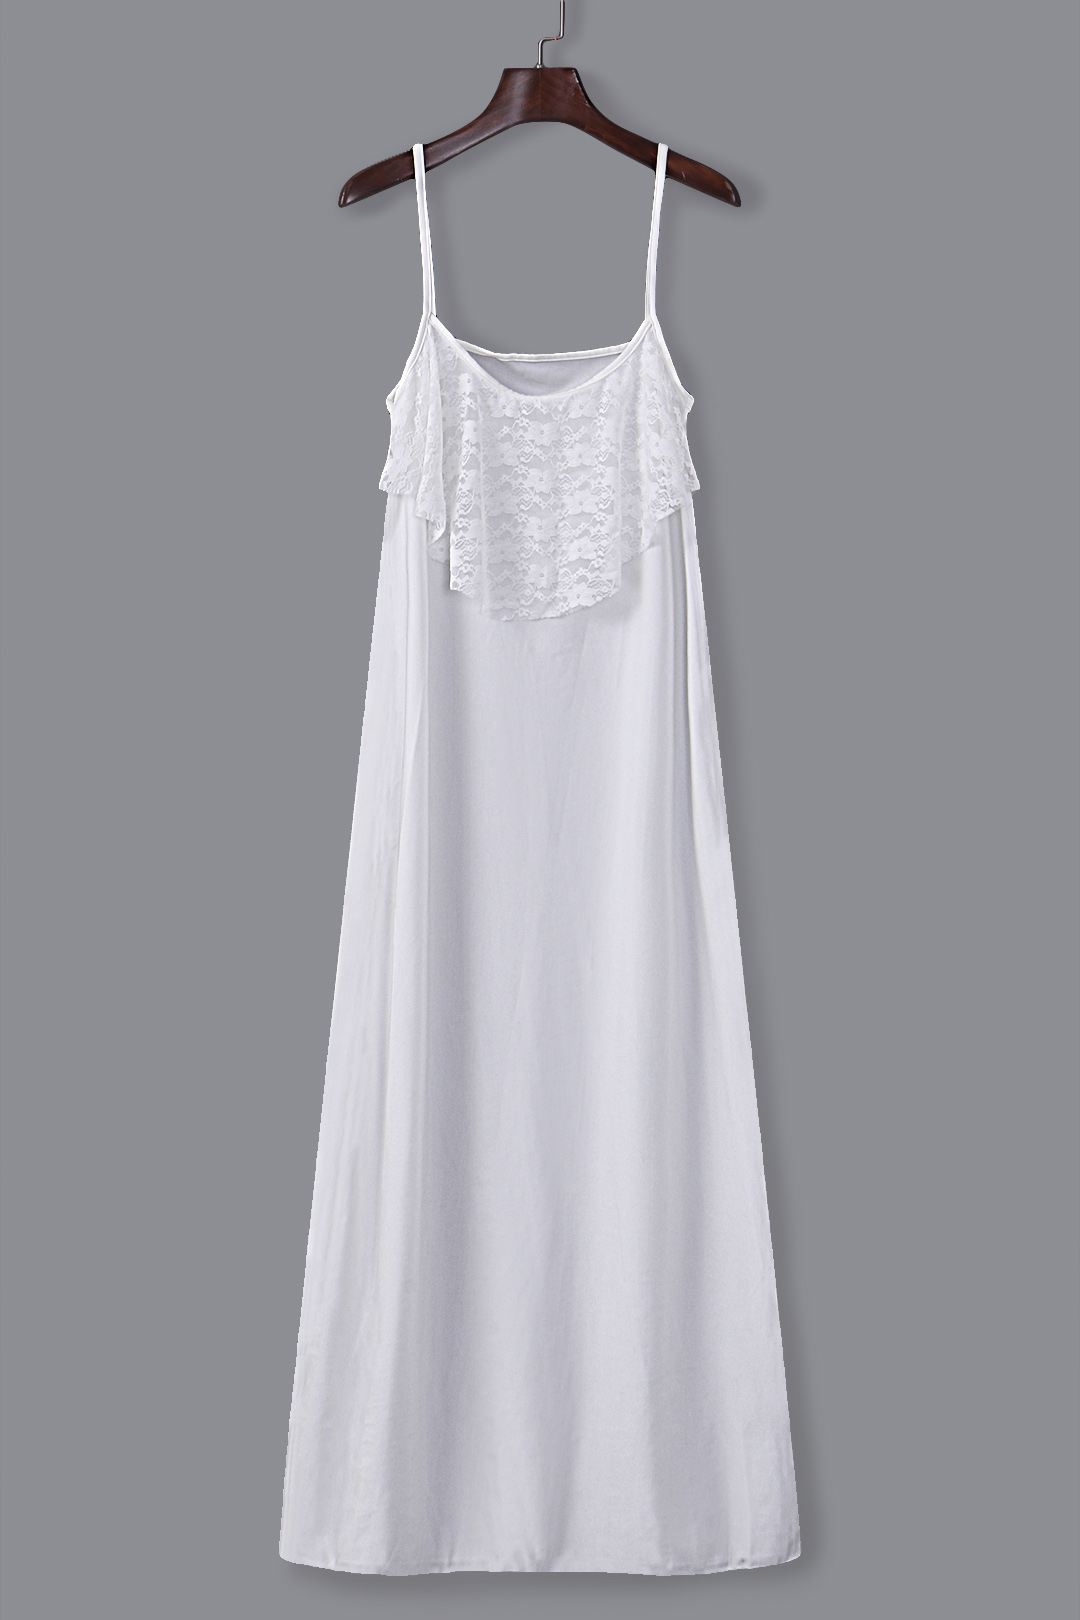 White Lace Trim Maxi Dress with Twin Adjustable Straps